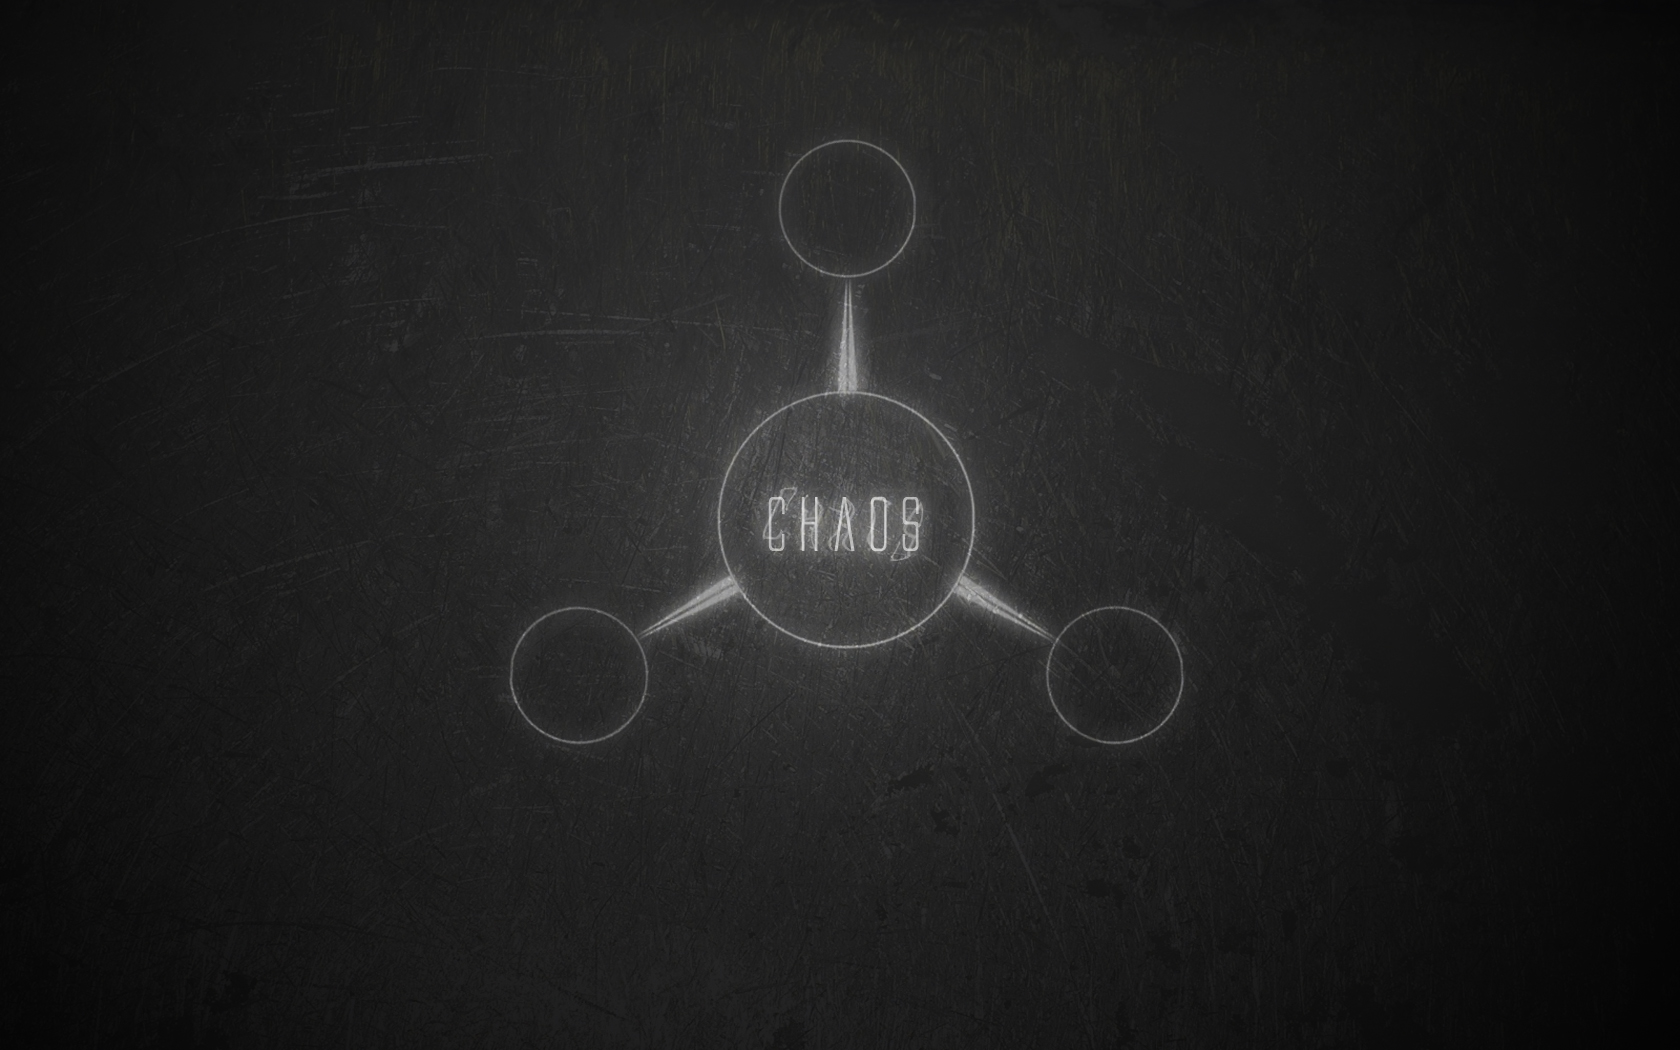 Chaos by Alasmon